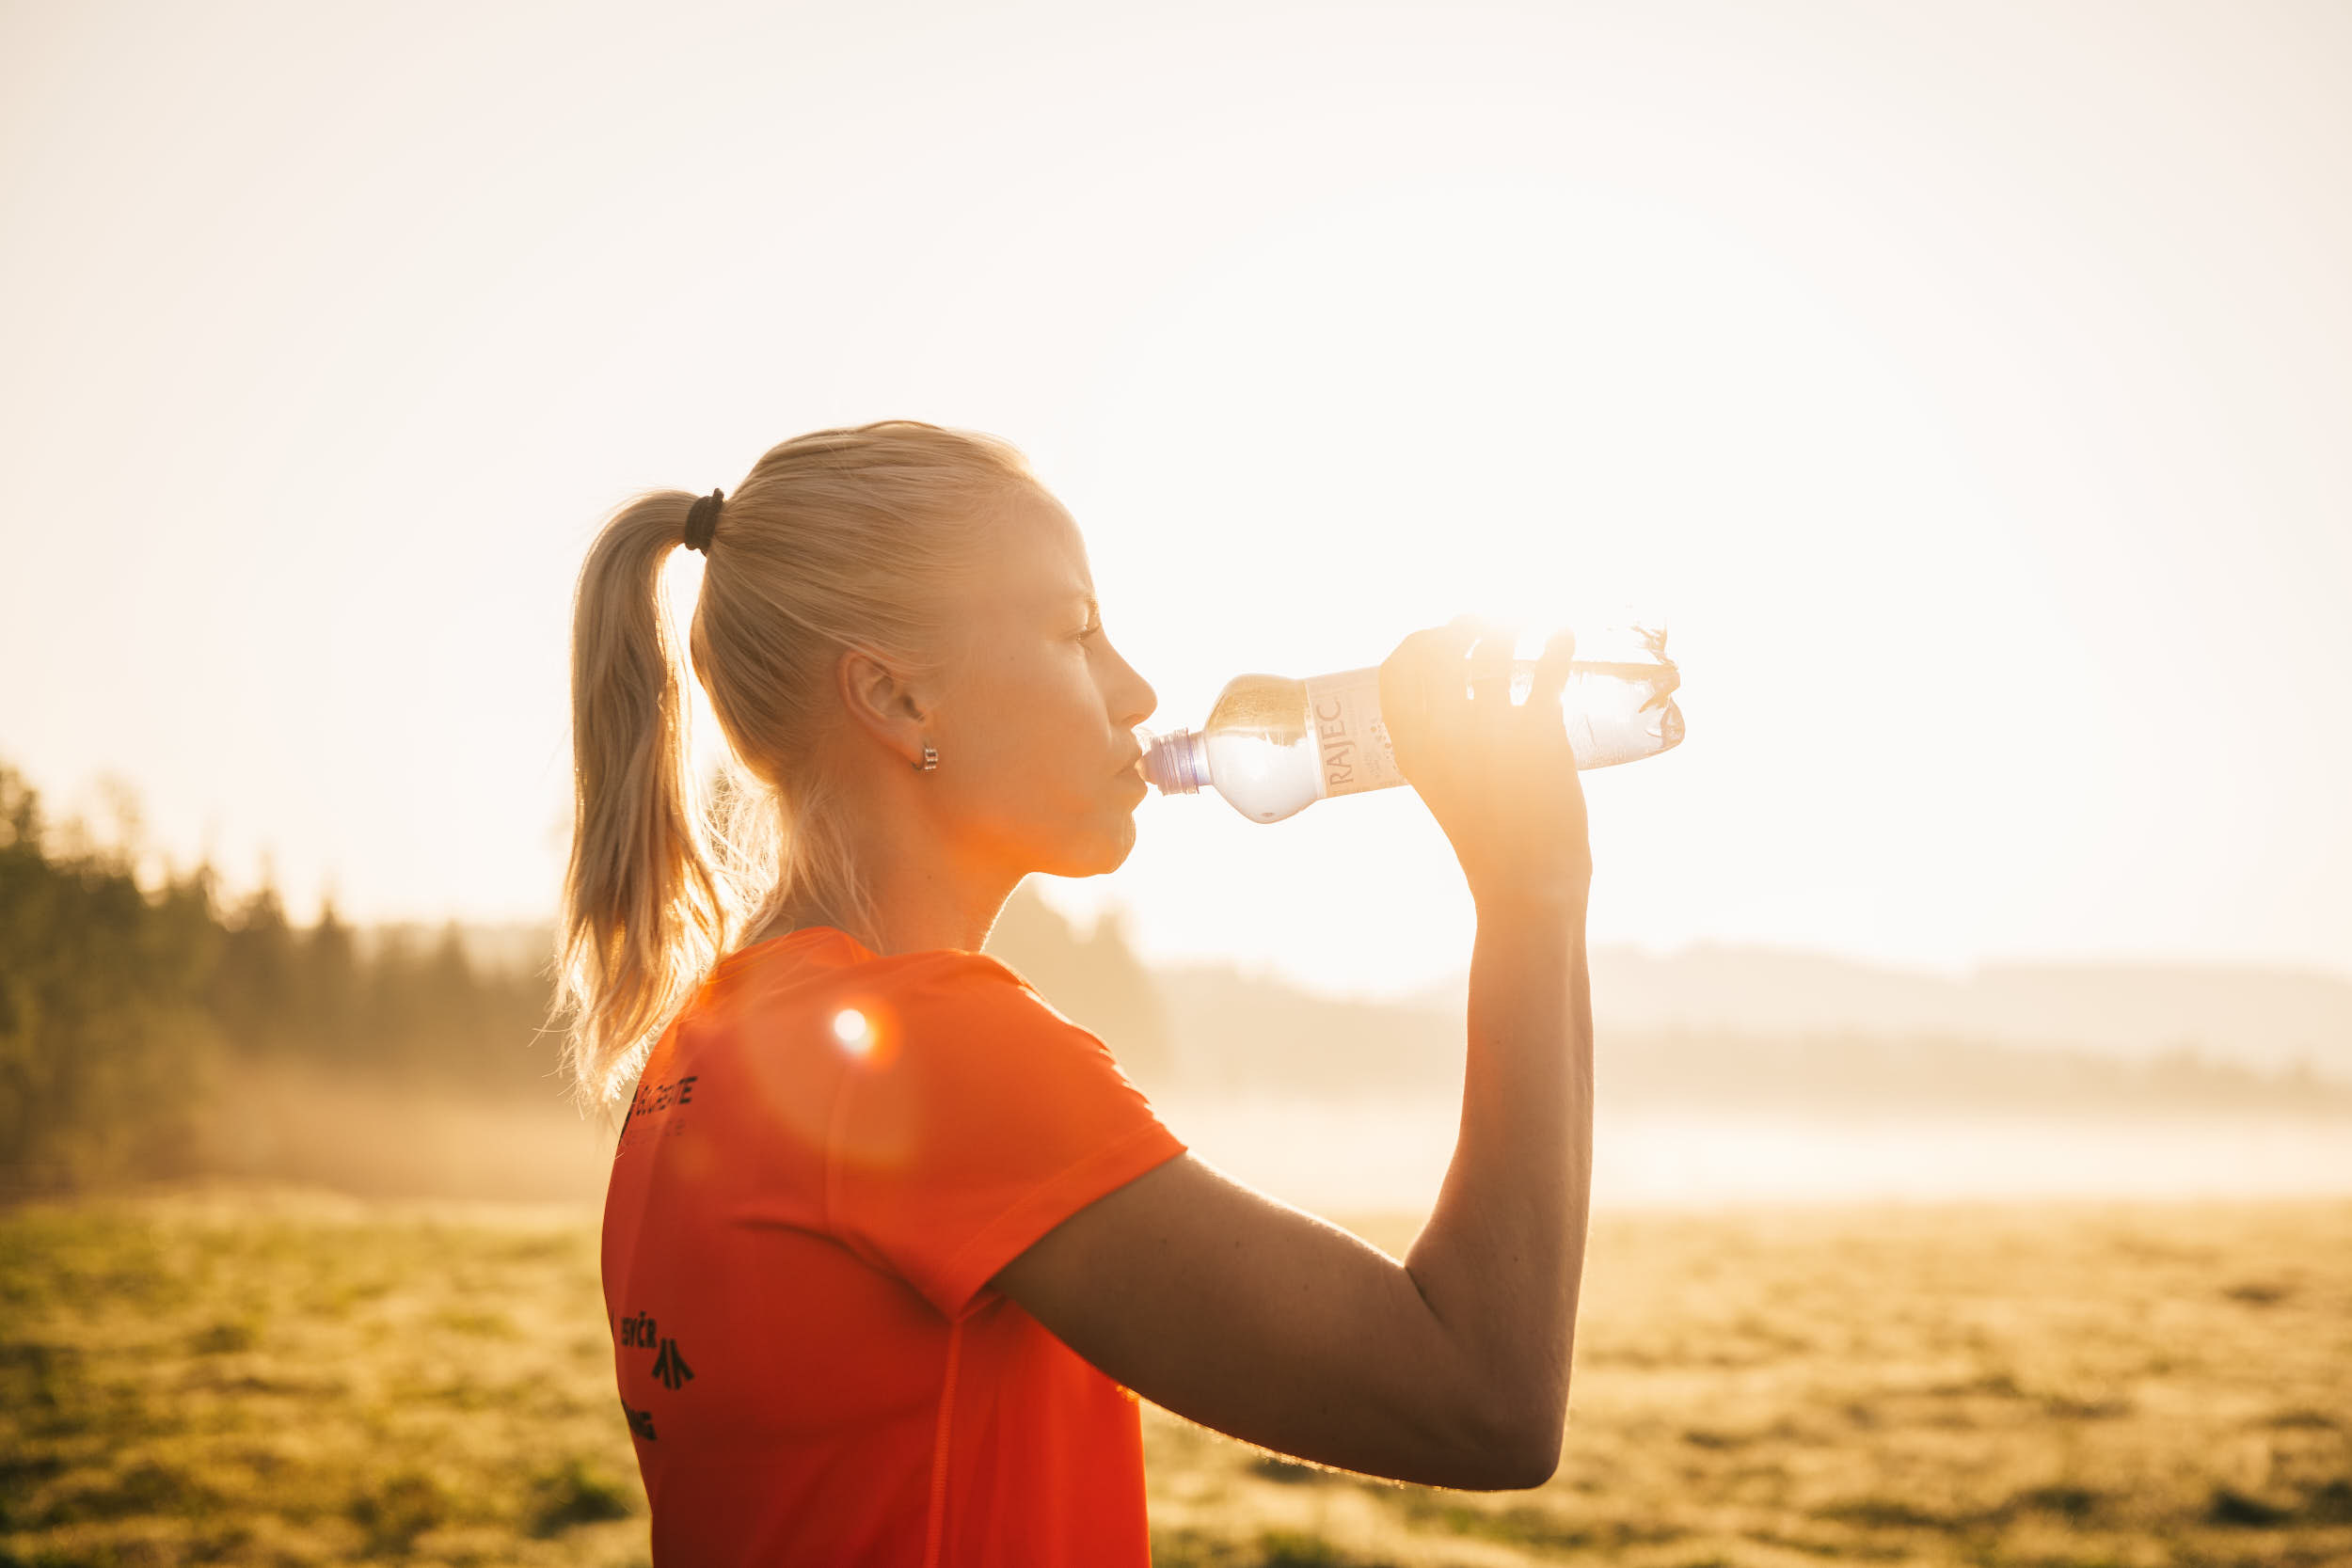 Female runner drinking water in a beautiful sunlit landscape.